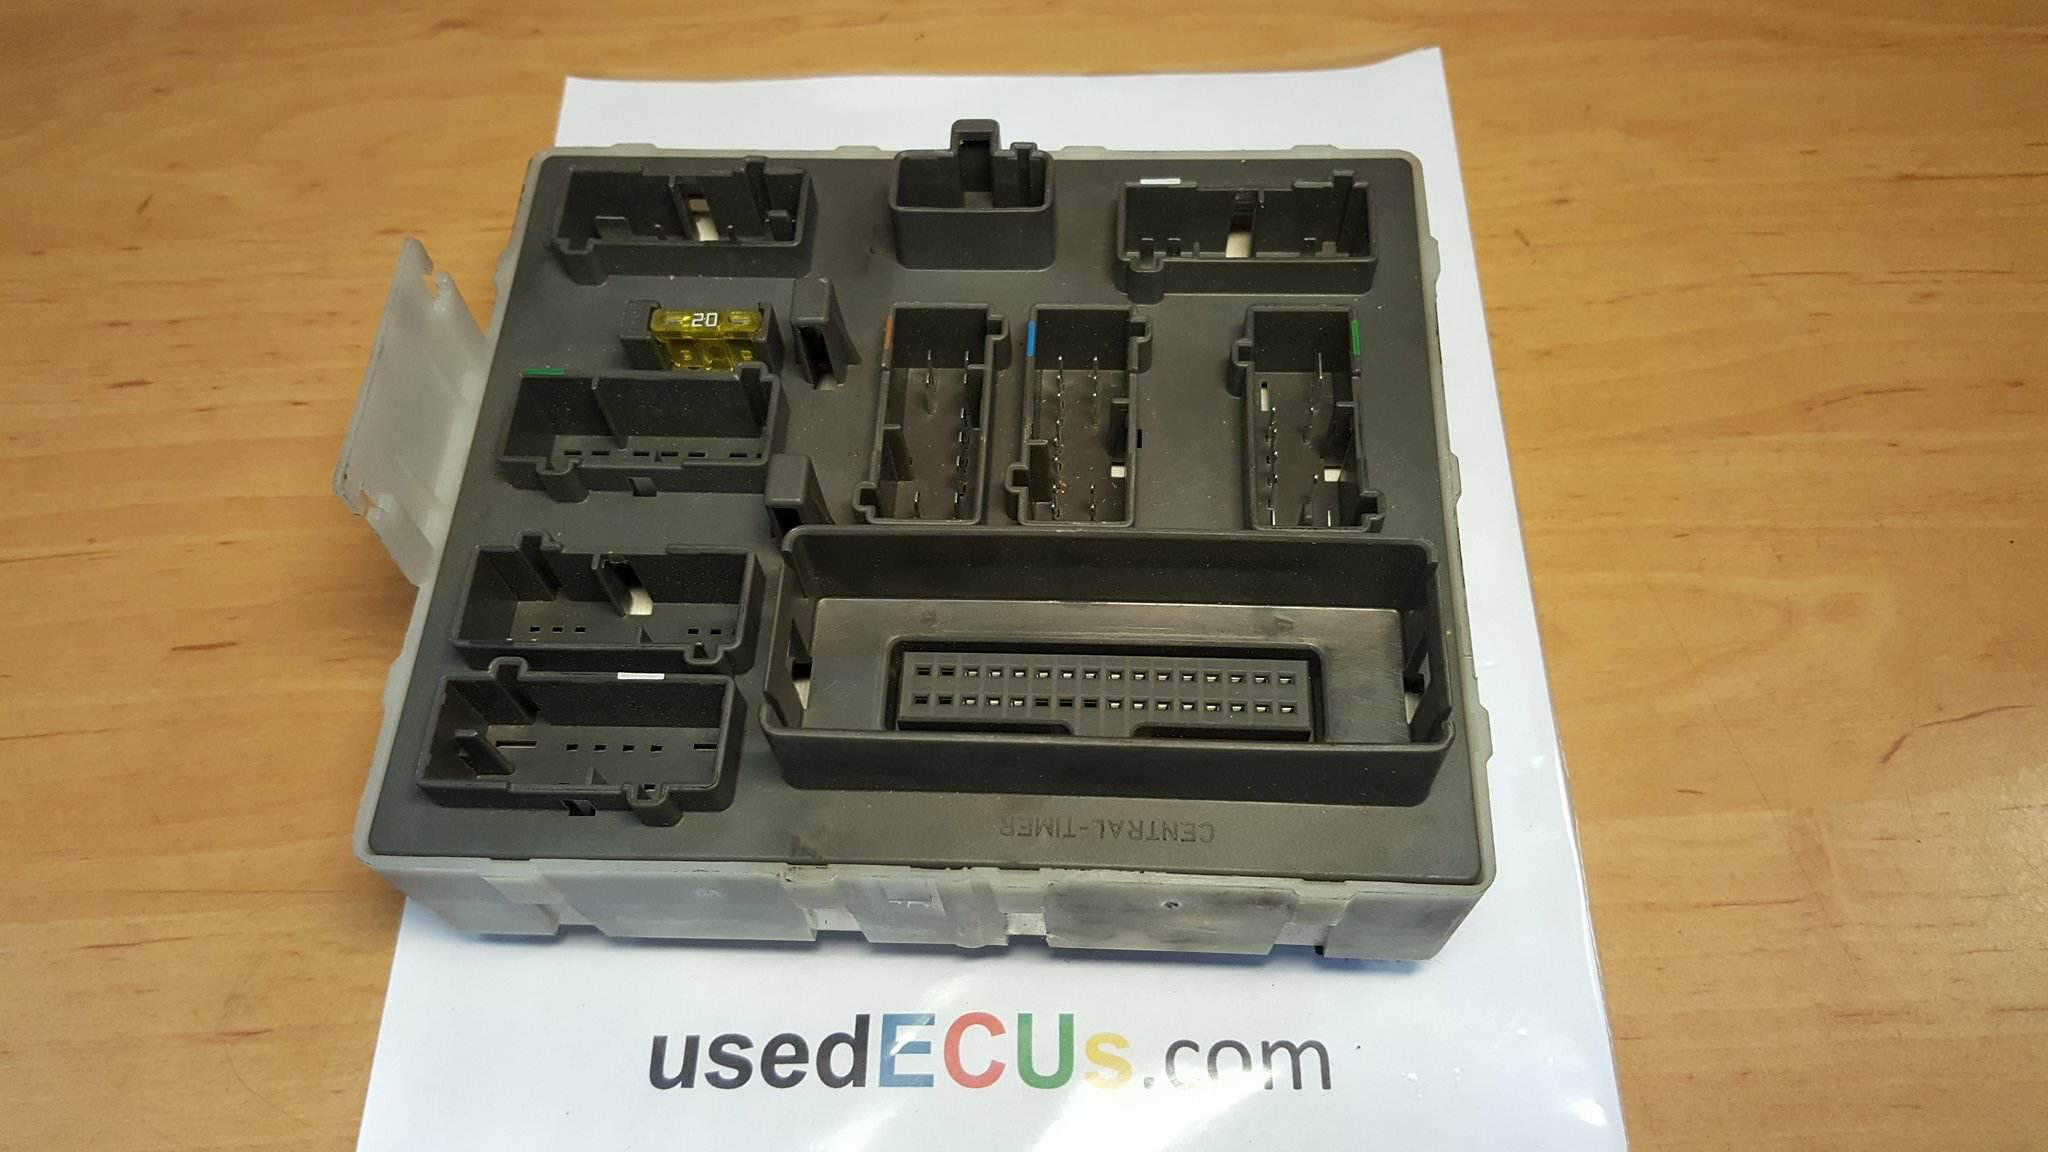 Focus Mk1 Fuse Box Wiring Library Ford 1999 518231808 98ag14a073ag Usedecuscom Price